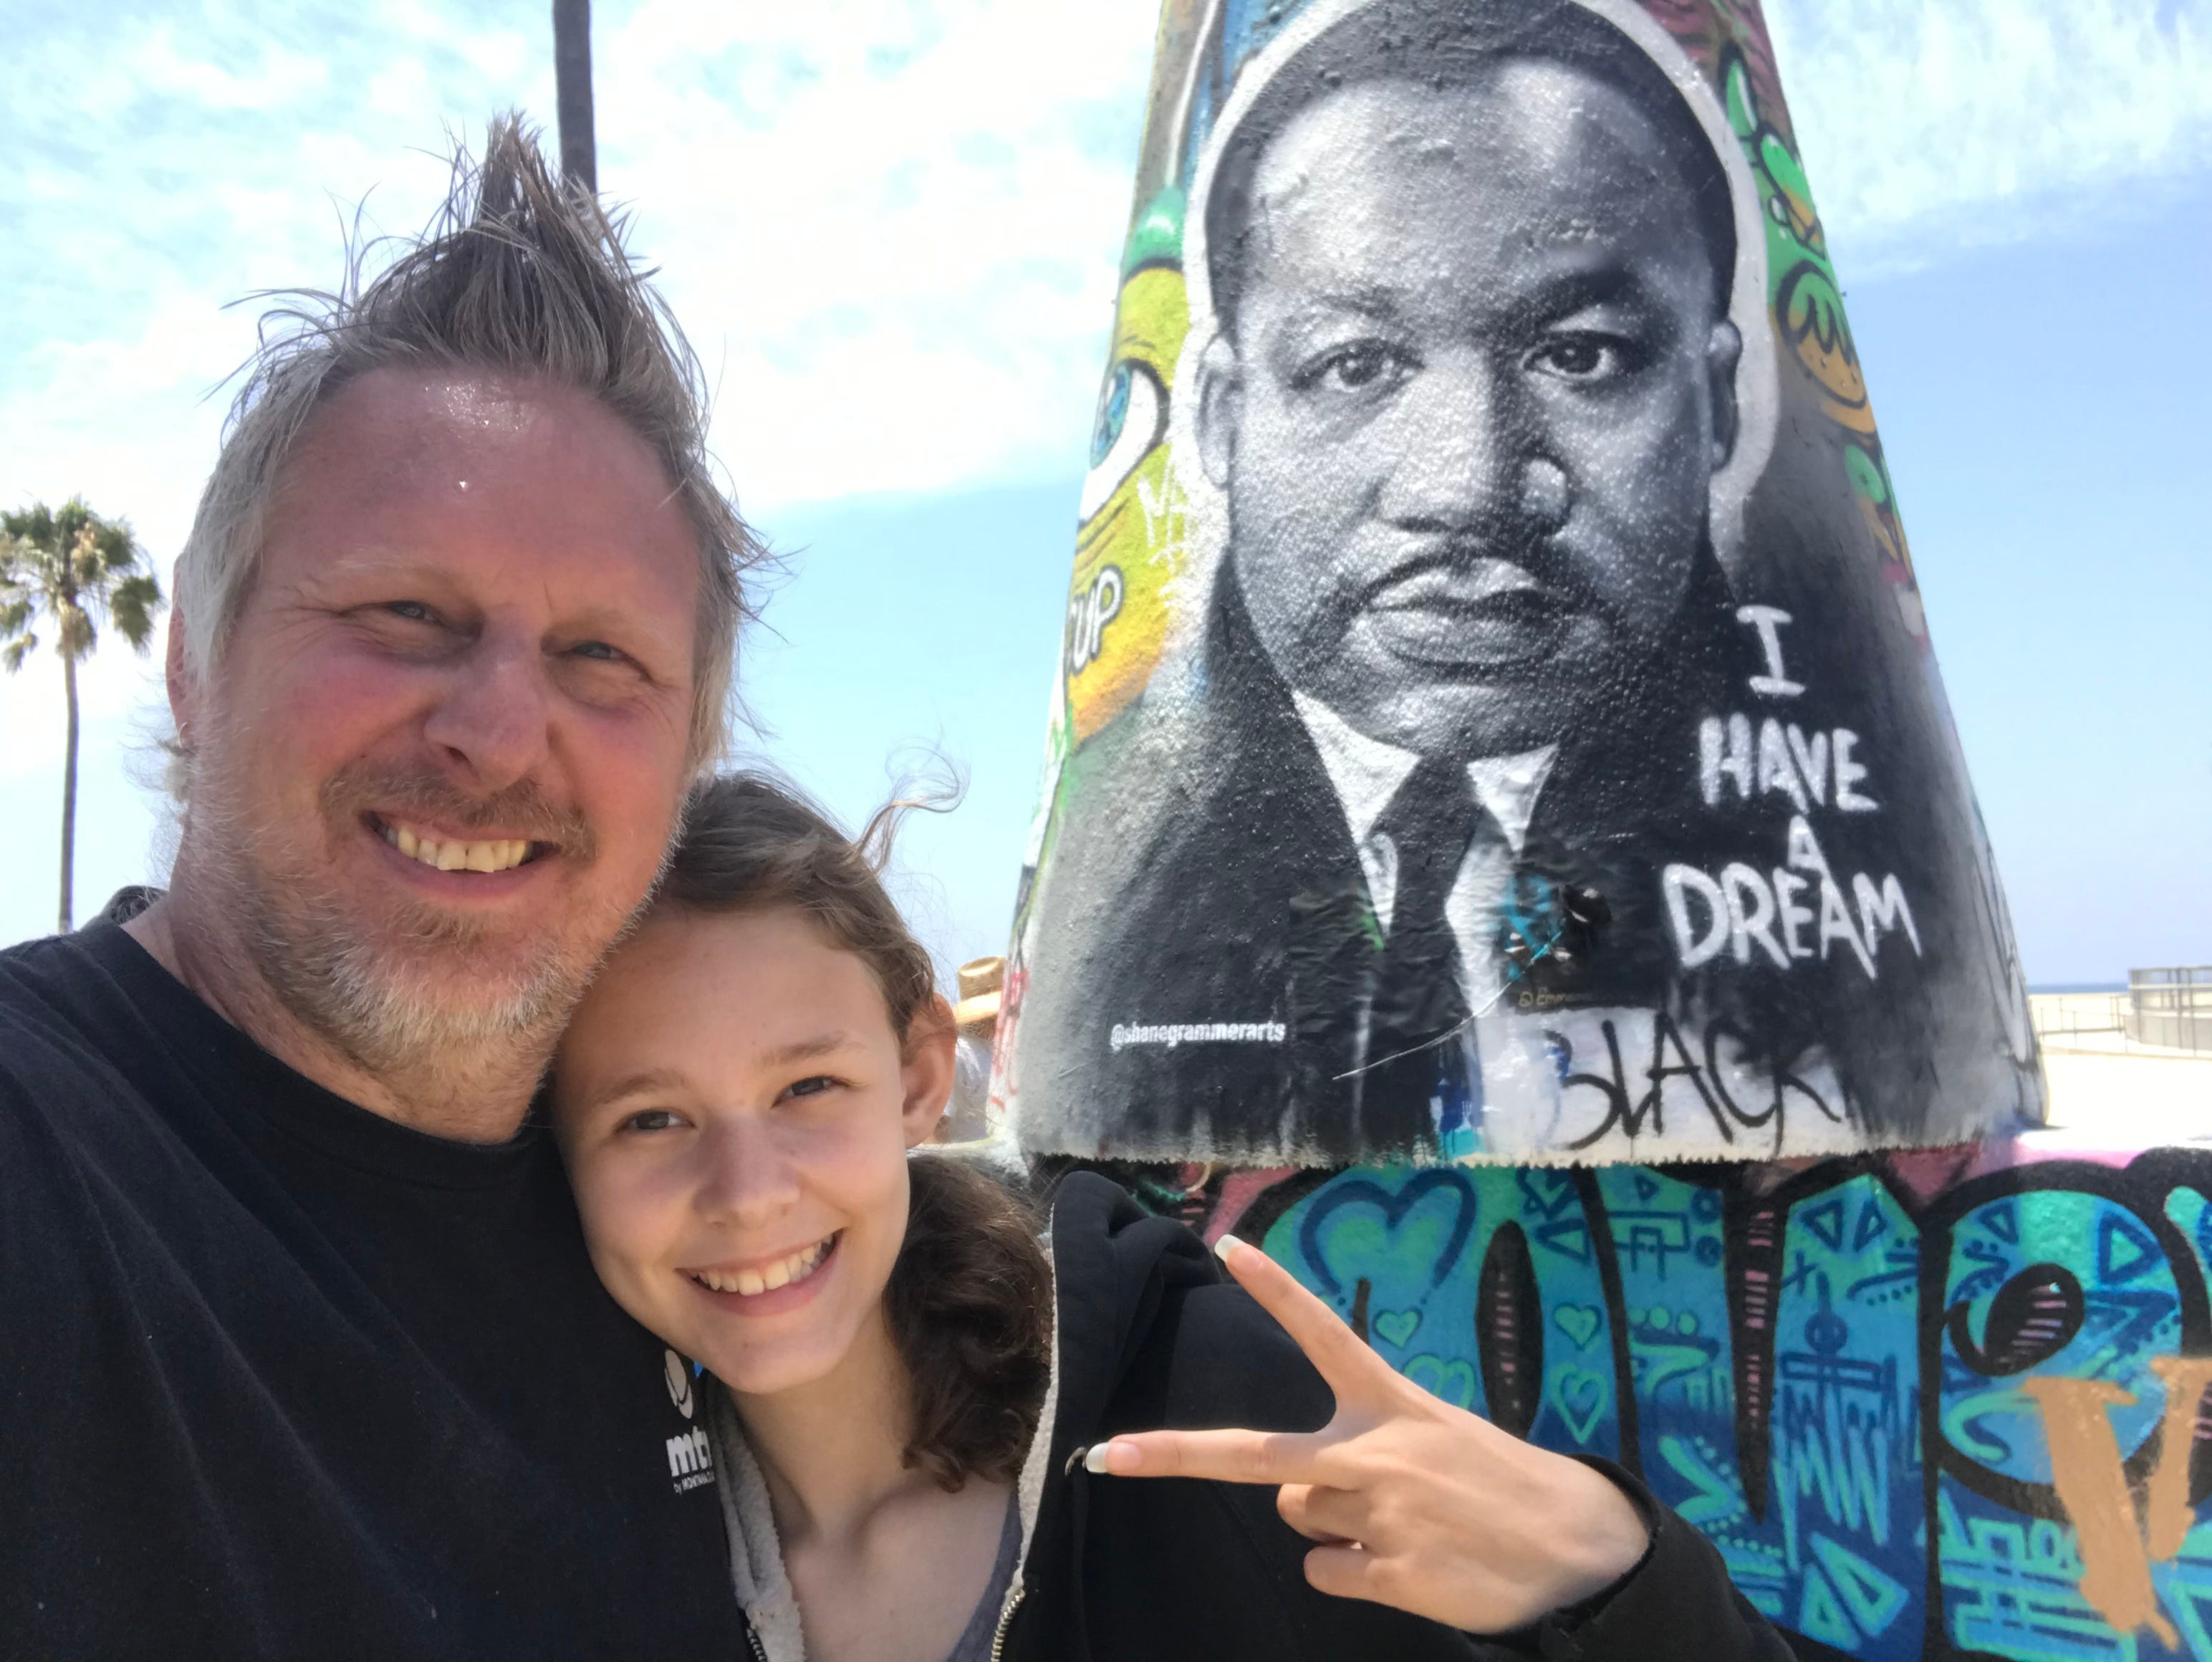 Artist Shane Grammer poses with his daughter, Elliana, in front of his mural of Martin Luther King, Jr. in Venice Beach.